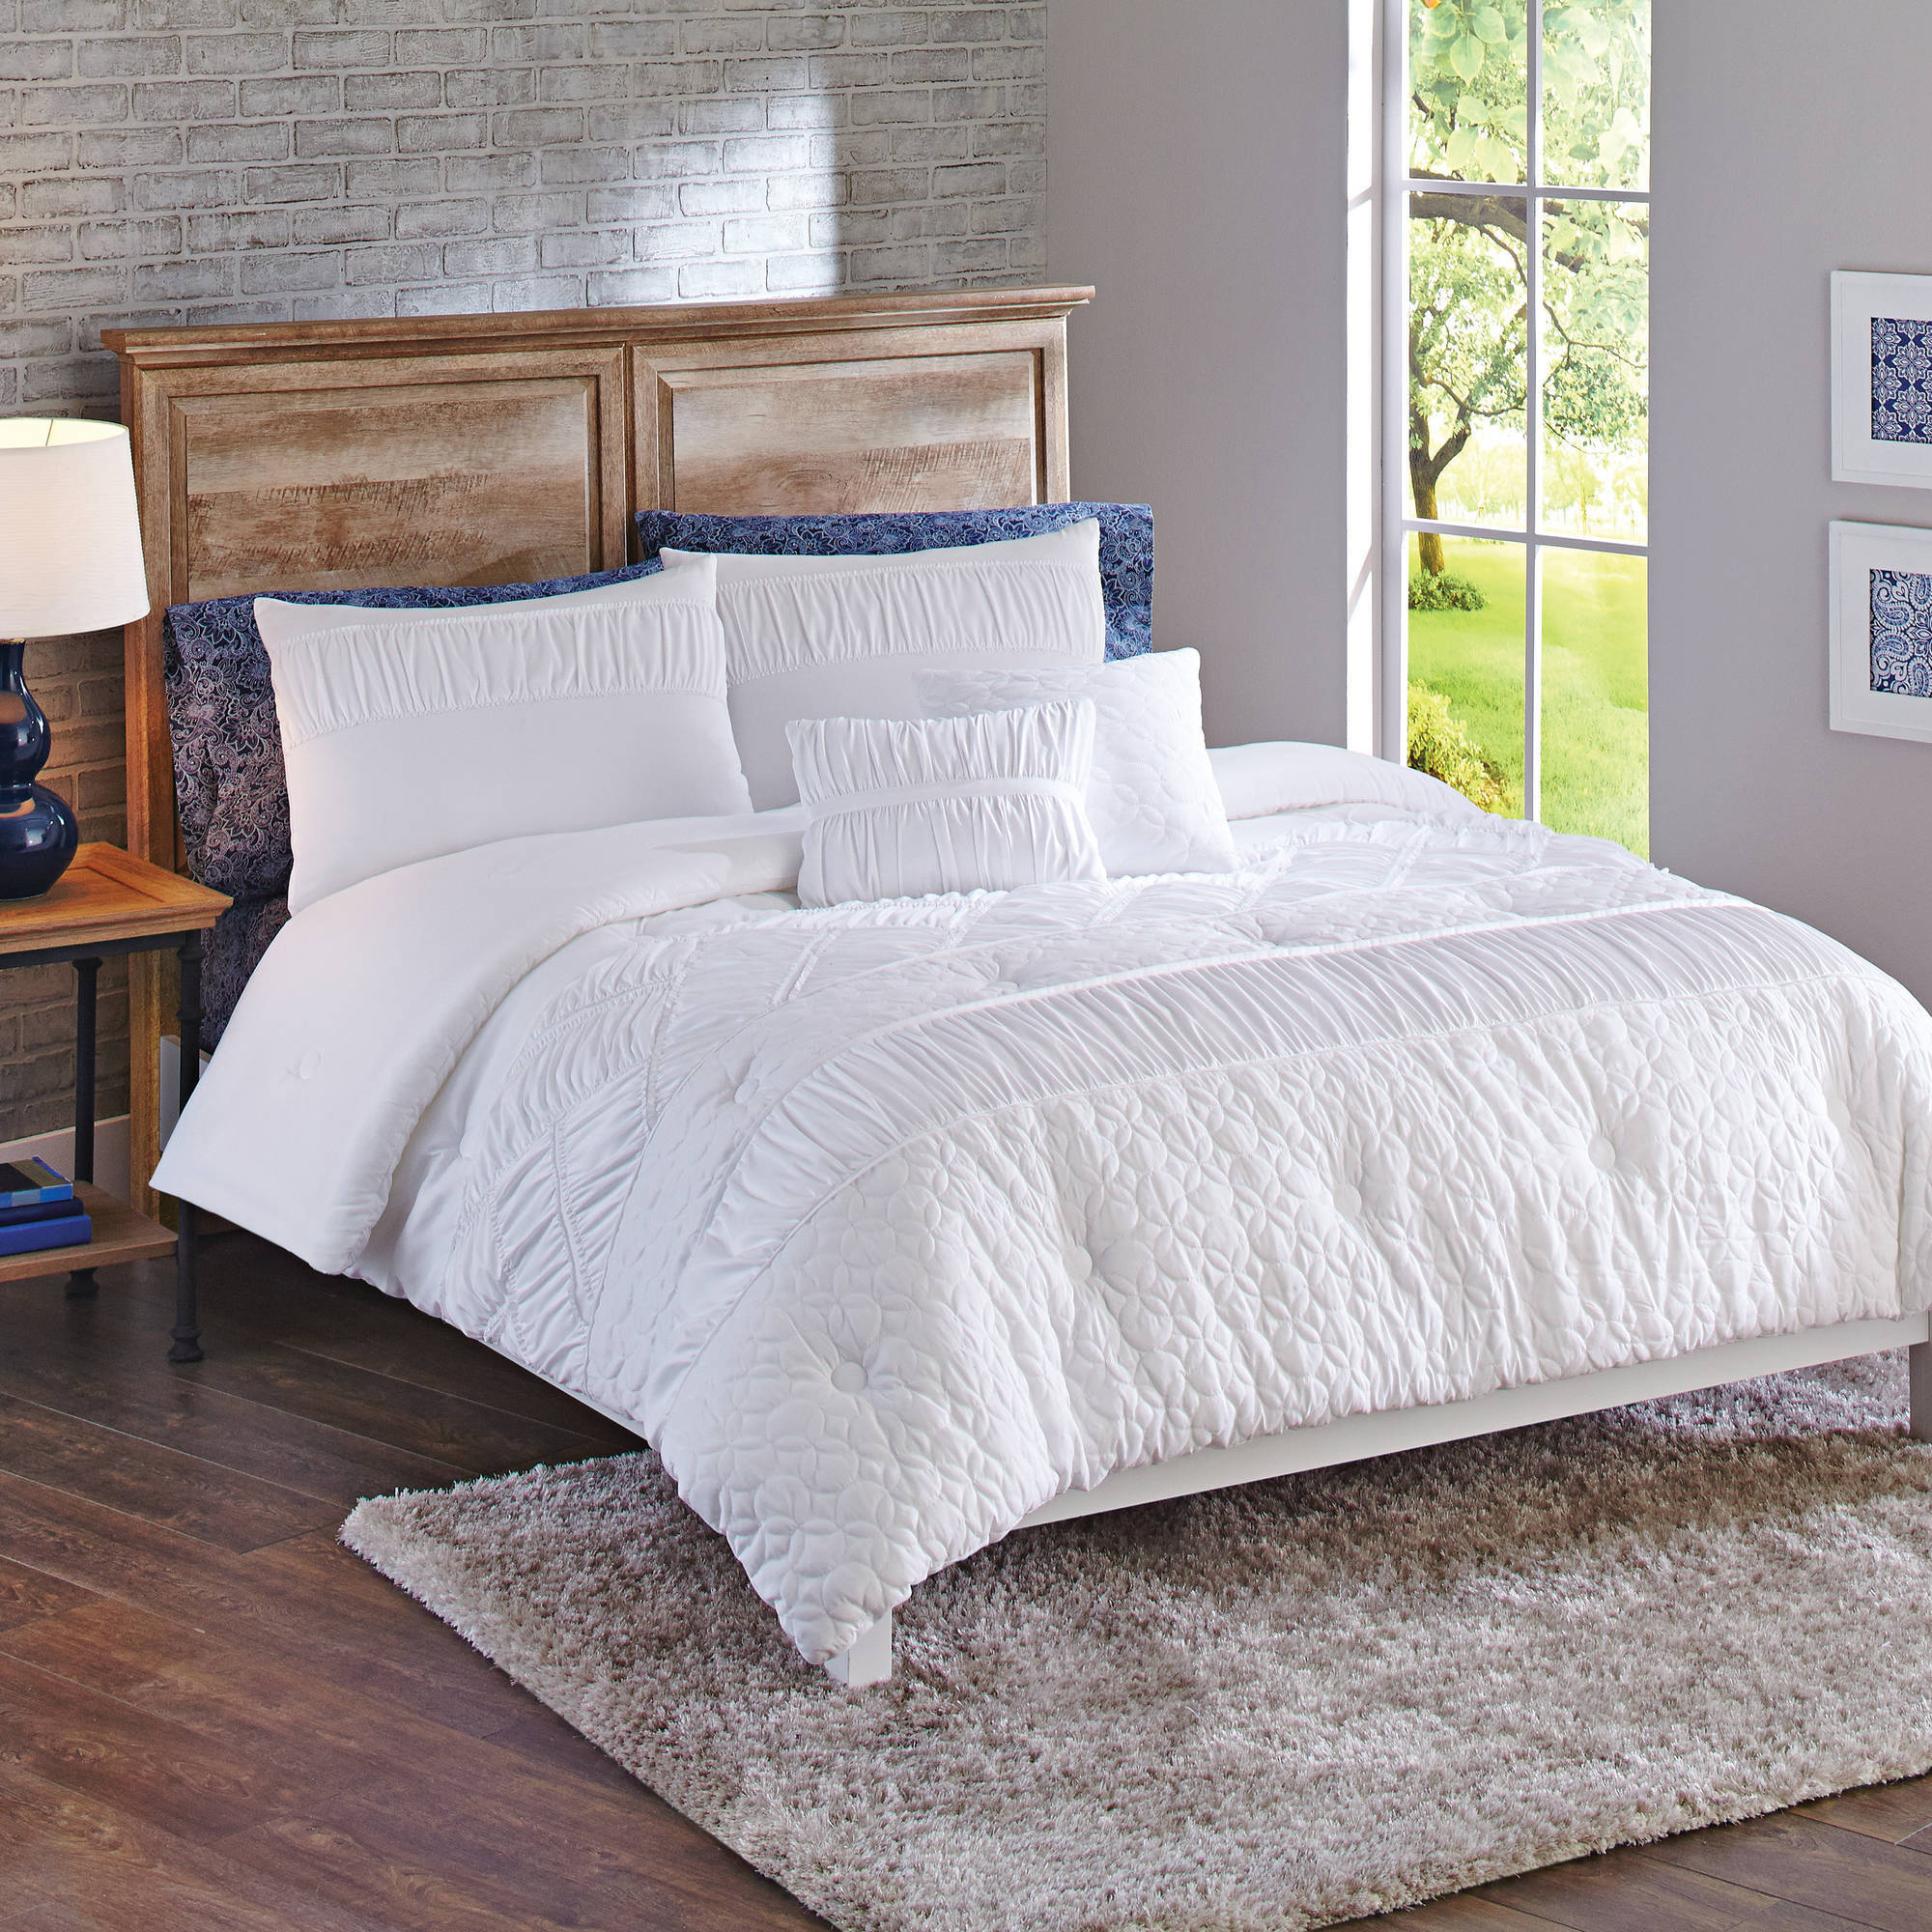 Better Homes & Gardens Full or Queen Textured Classic Comforter Set, 5 Piece